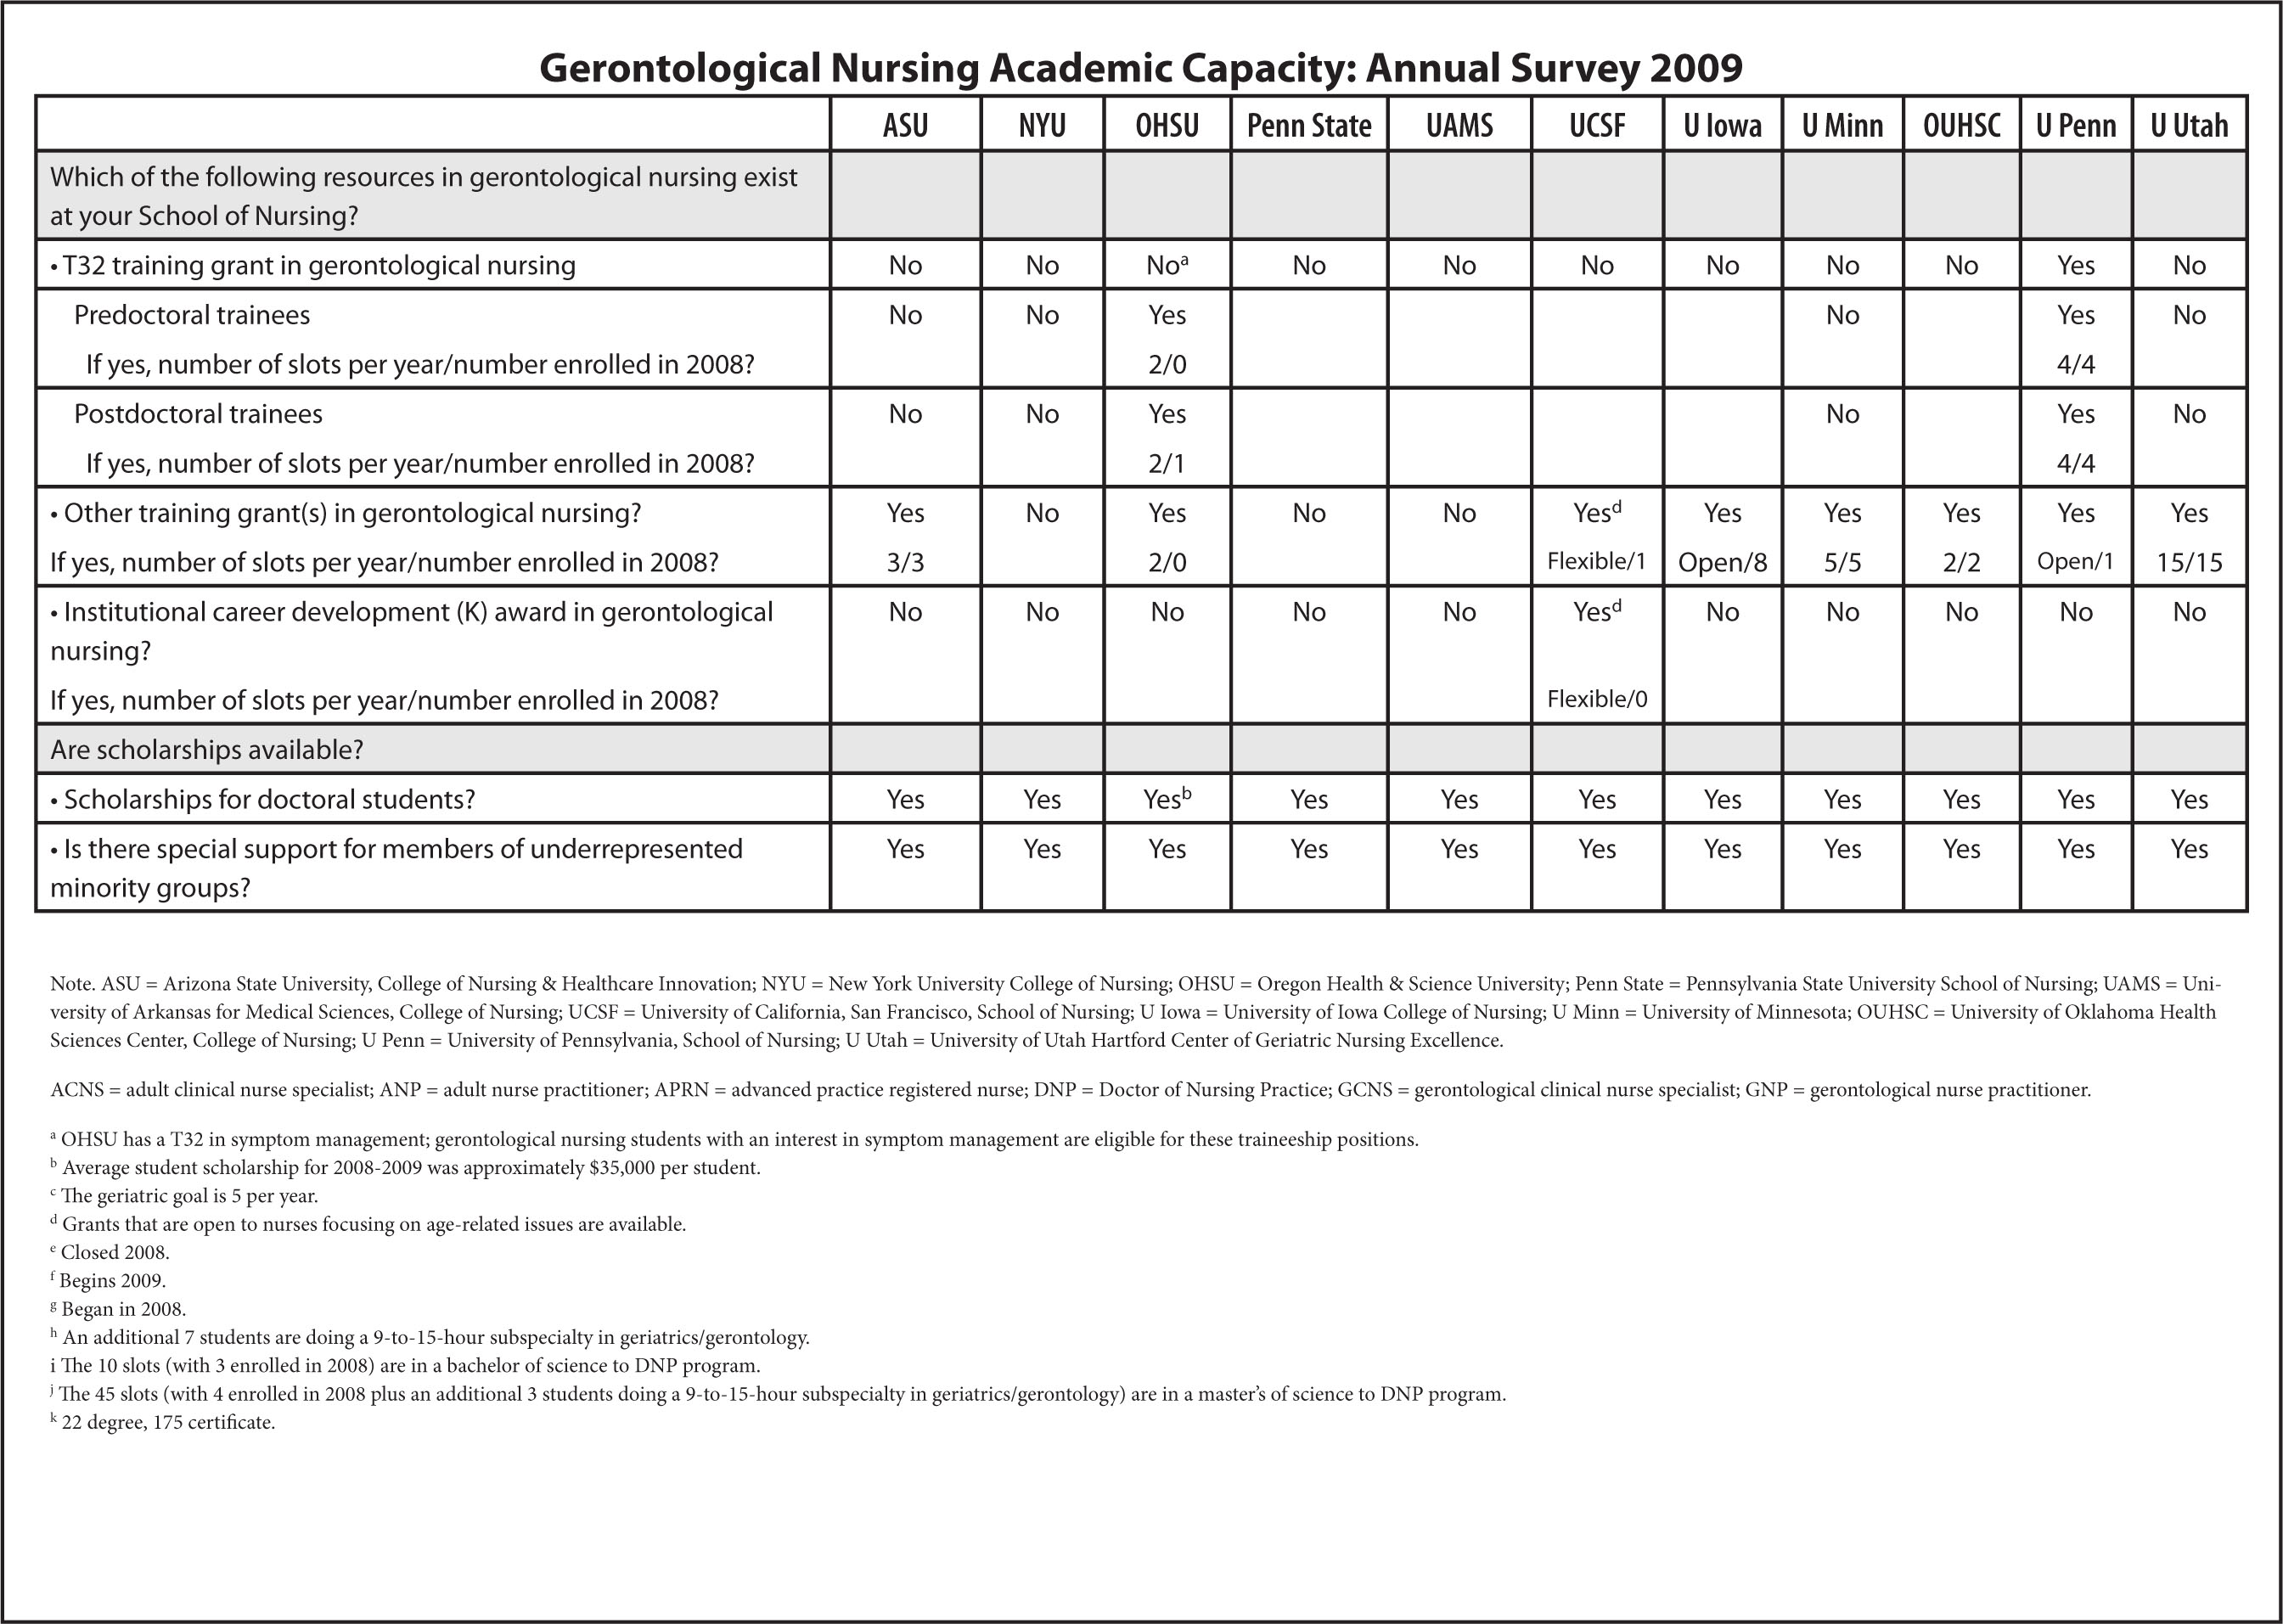 Gerontological Nursing Academic Capacity: Annual Survey 2009